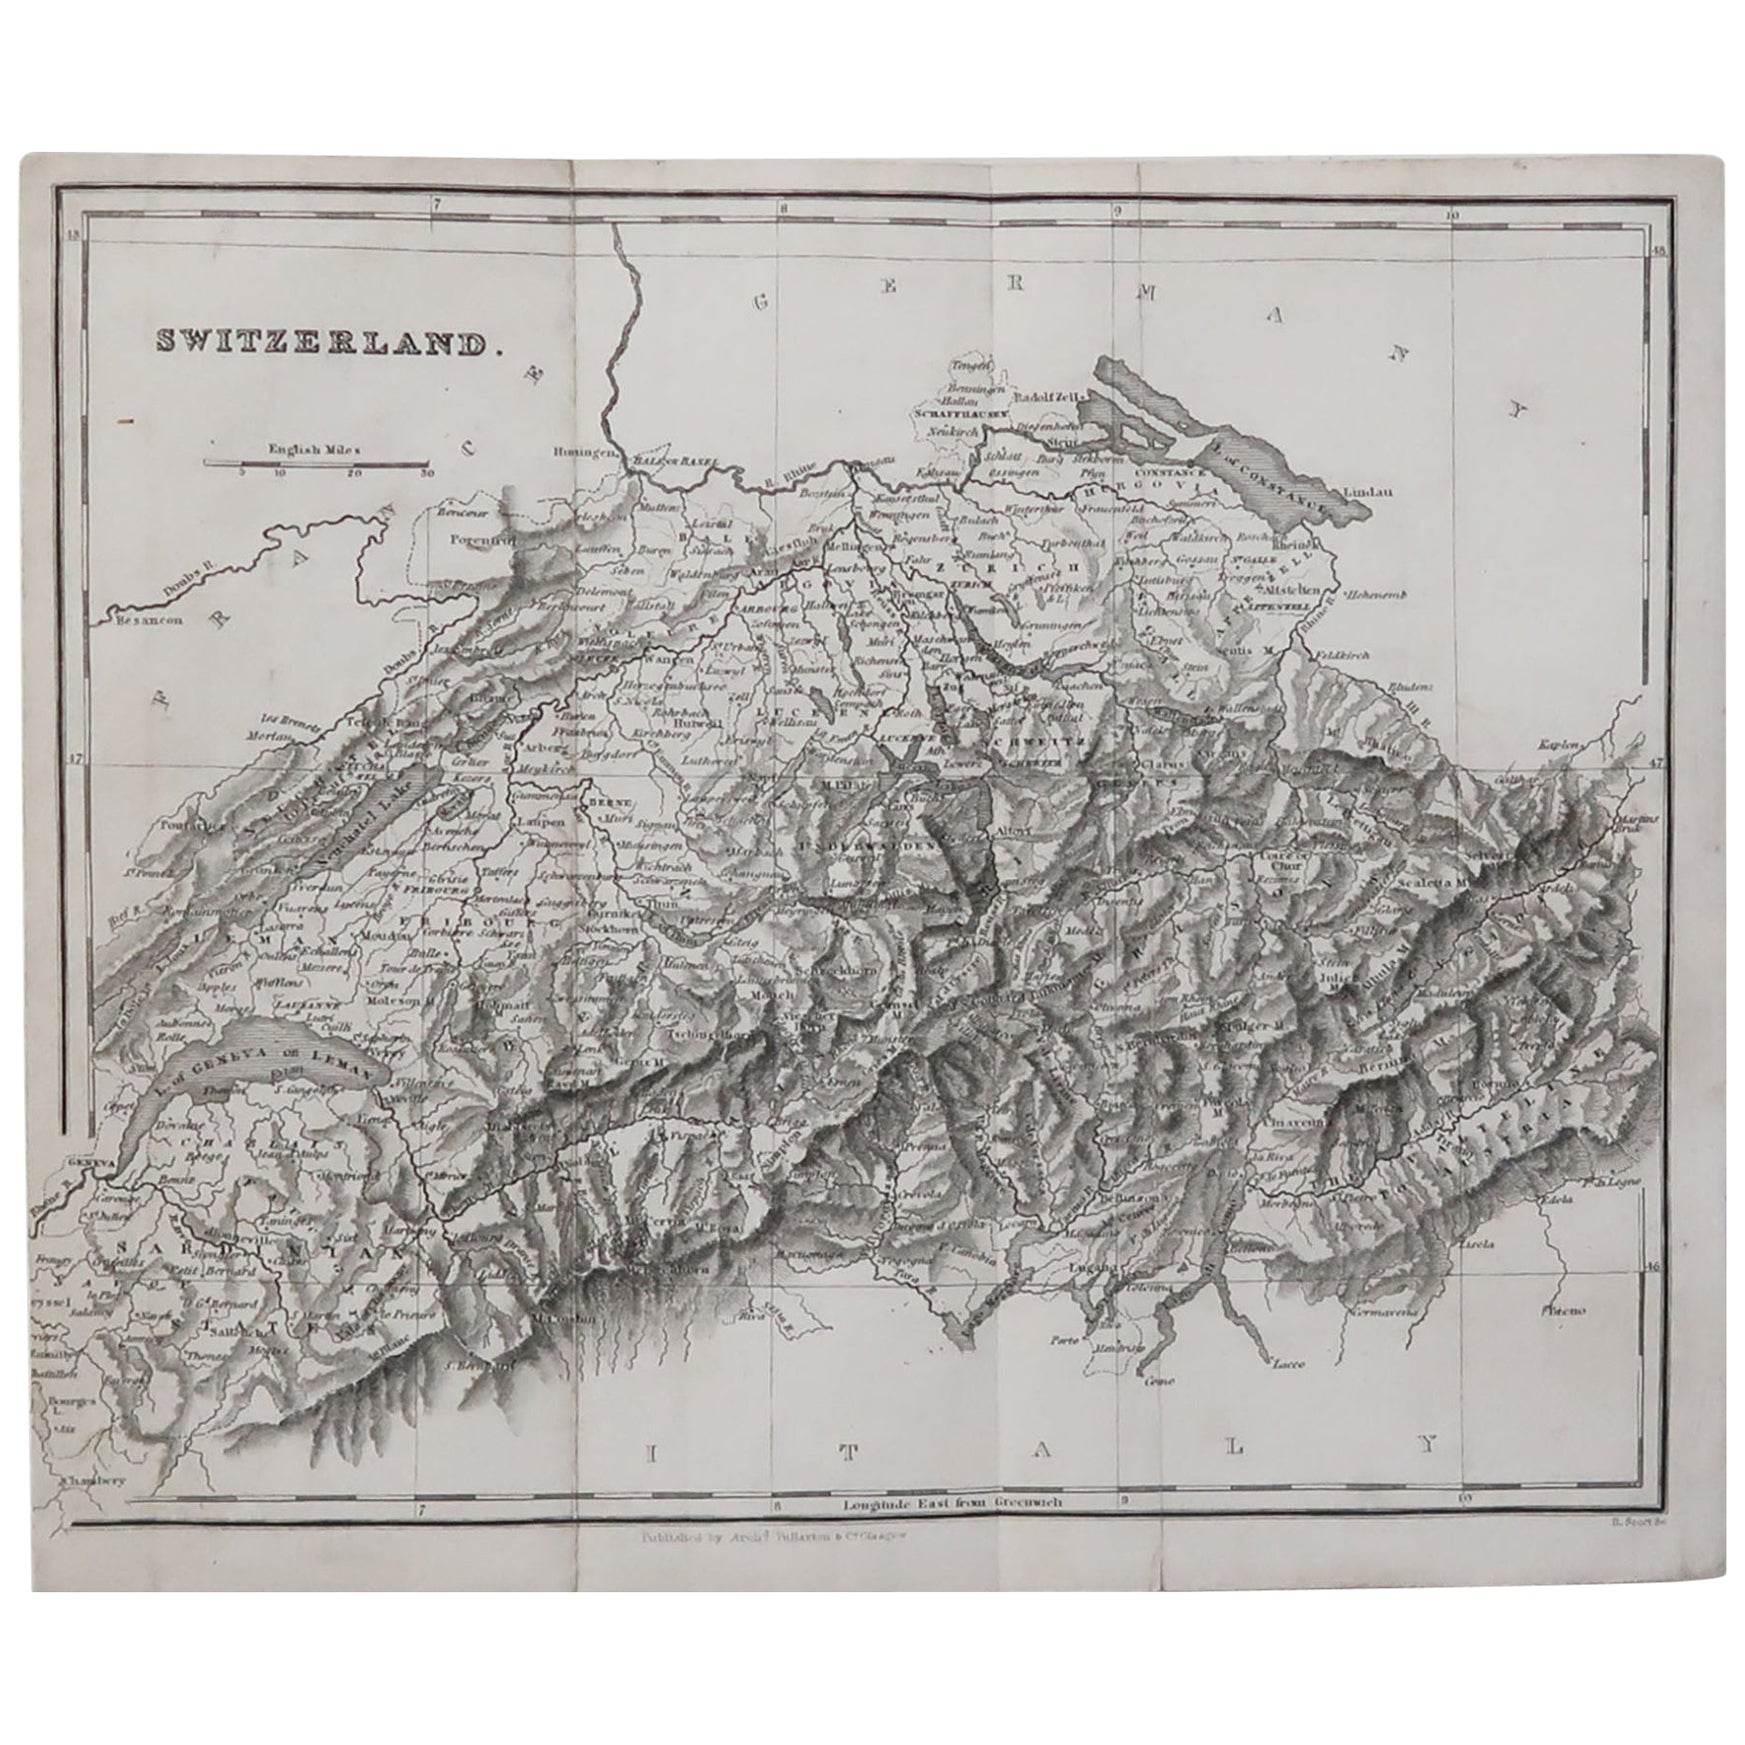 Original Antique Map of Switzerland, circa 1840